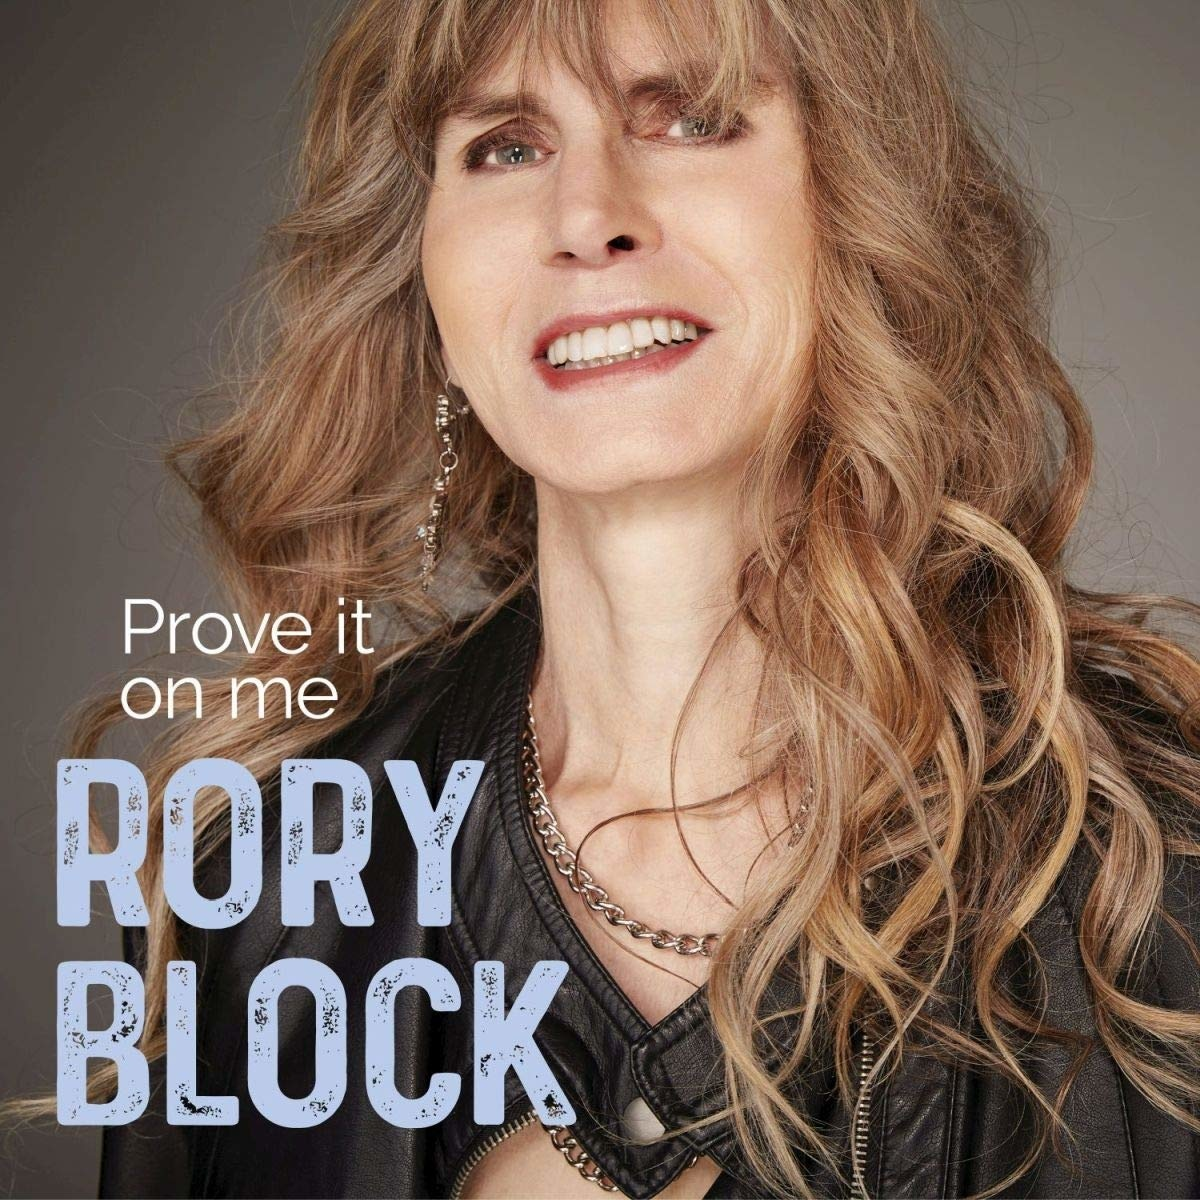 Rory Block s  Prove It on Me  Pays Tribute to Women s Blues